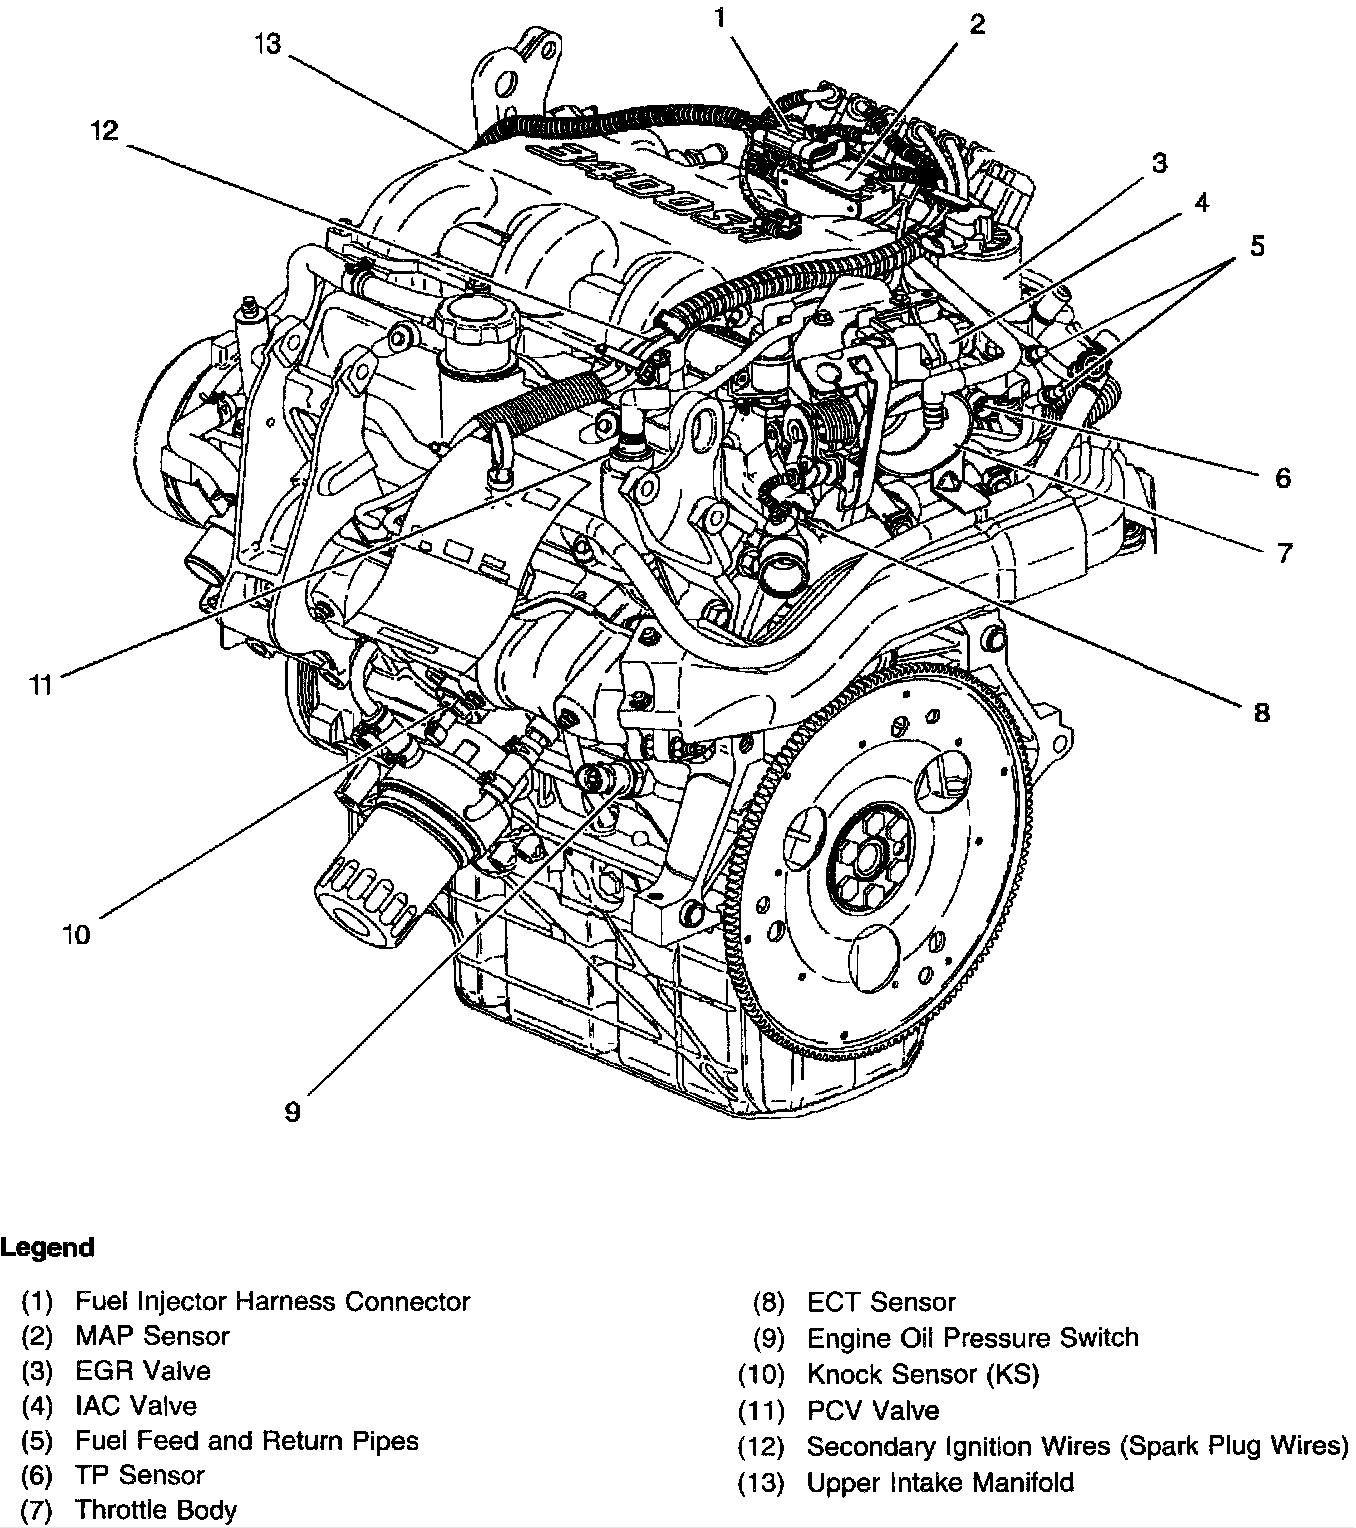 harley ignition cover, harley ignition problems, harley charging system diagram, harley wiring harness, harley transmission diagram, harley headlight diagram, harley magneto diagram, 1974 vw alternator wiring diagram, harley clutch diagram, harley shift linkage diagram, harley carburetor diagram, msd box wiring diagram, harley ignition timing, harley fuel lines diagram, harley ignition coil, harley engine diagram, harley ignition switch, harley starter diagram, harley speedometer diagram, harley electrical diagram, on harley ignition wiring diagram 2008